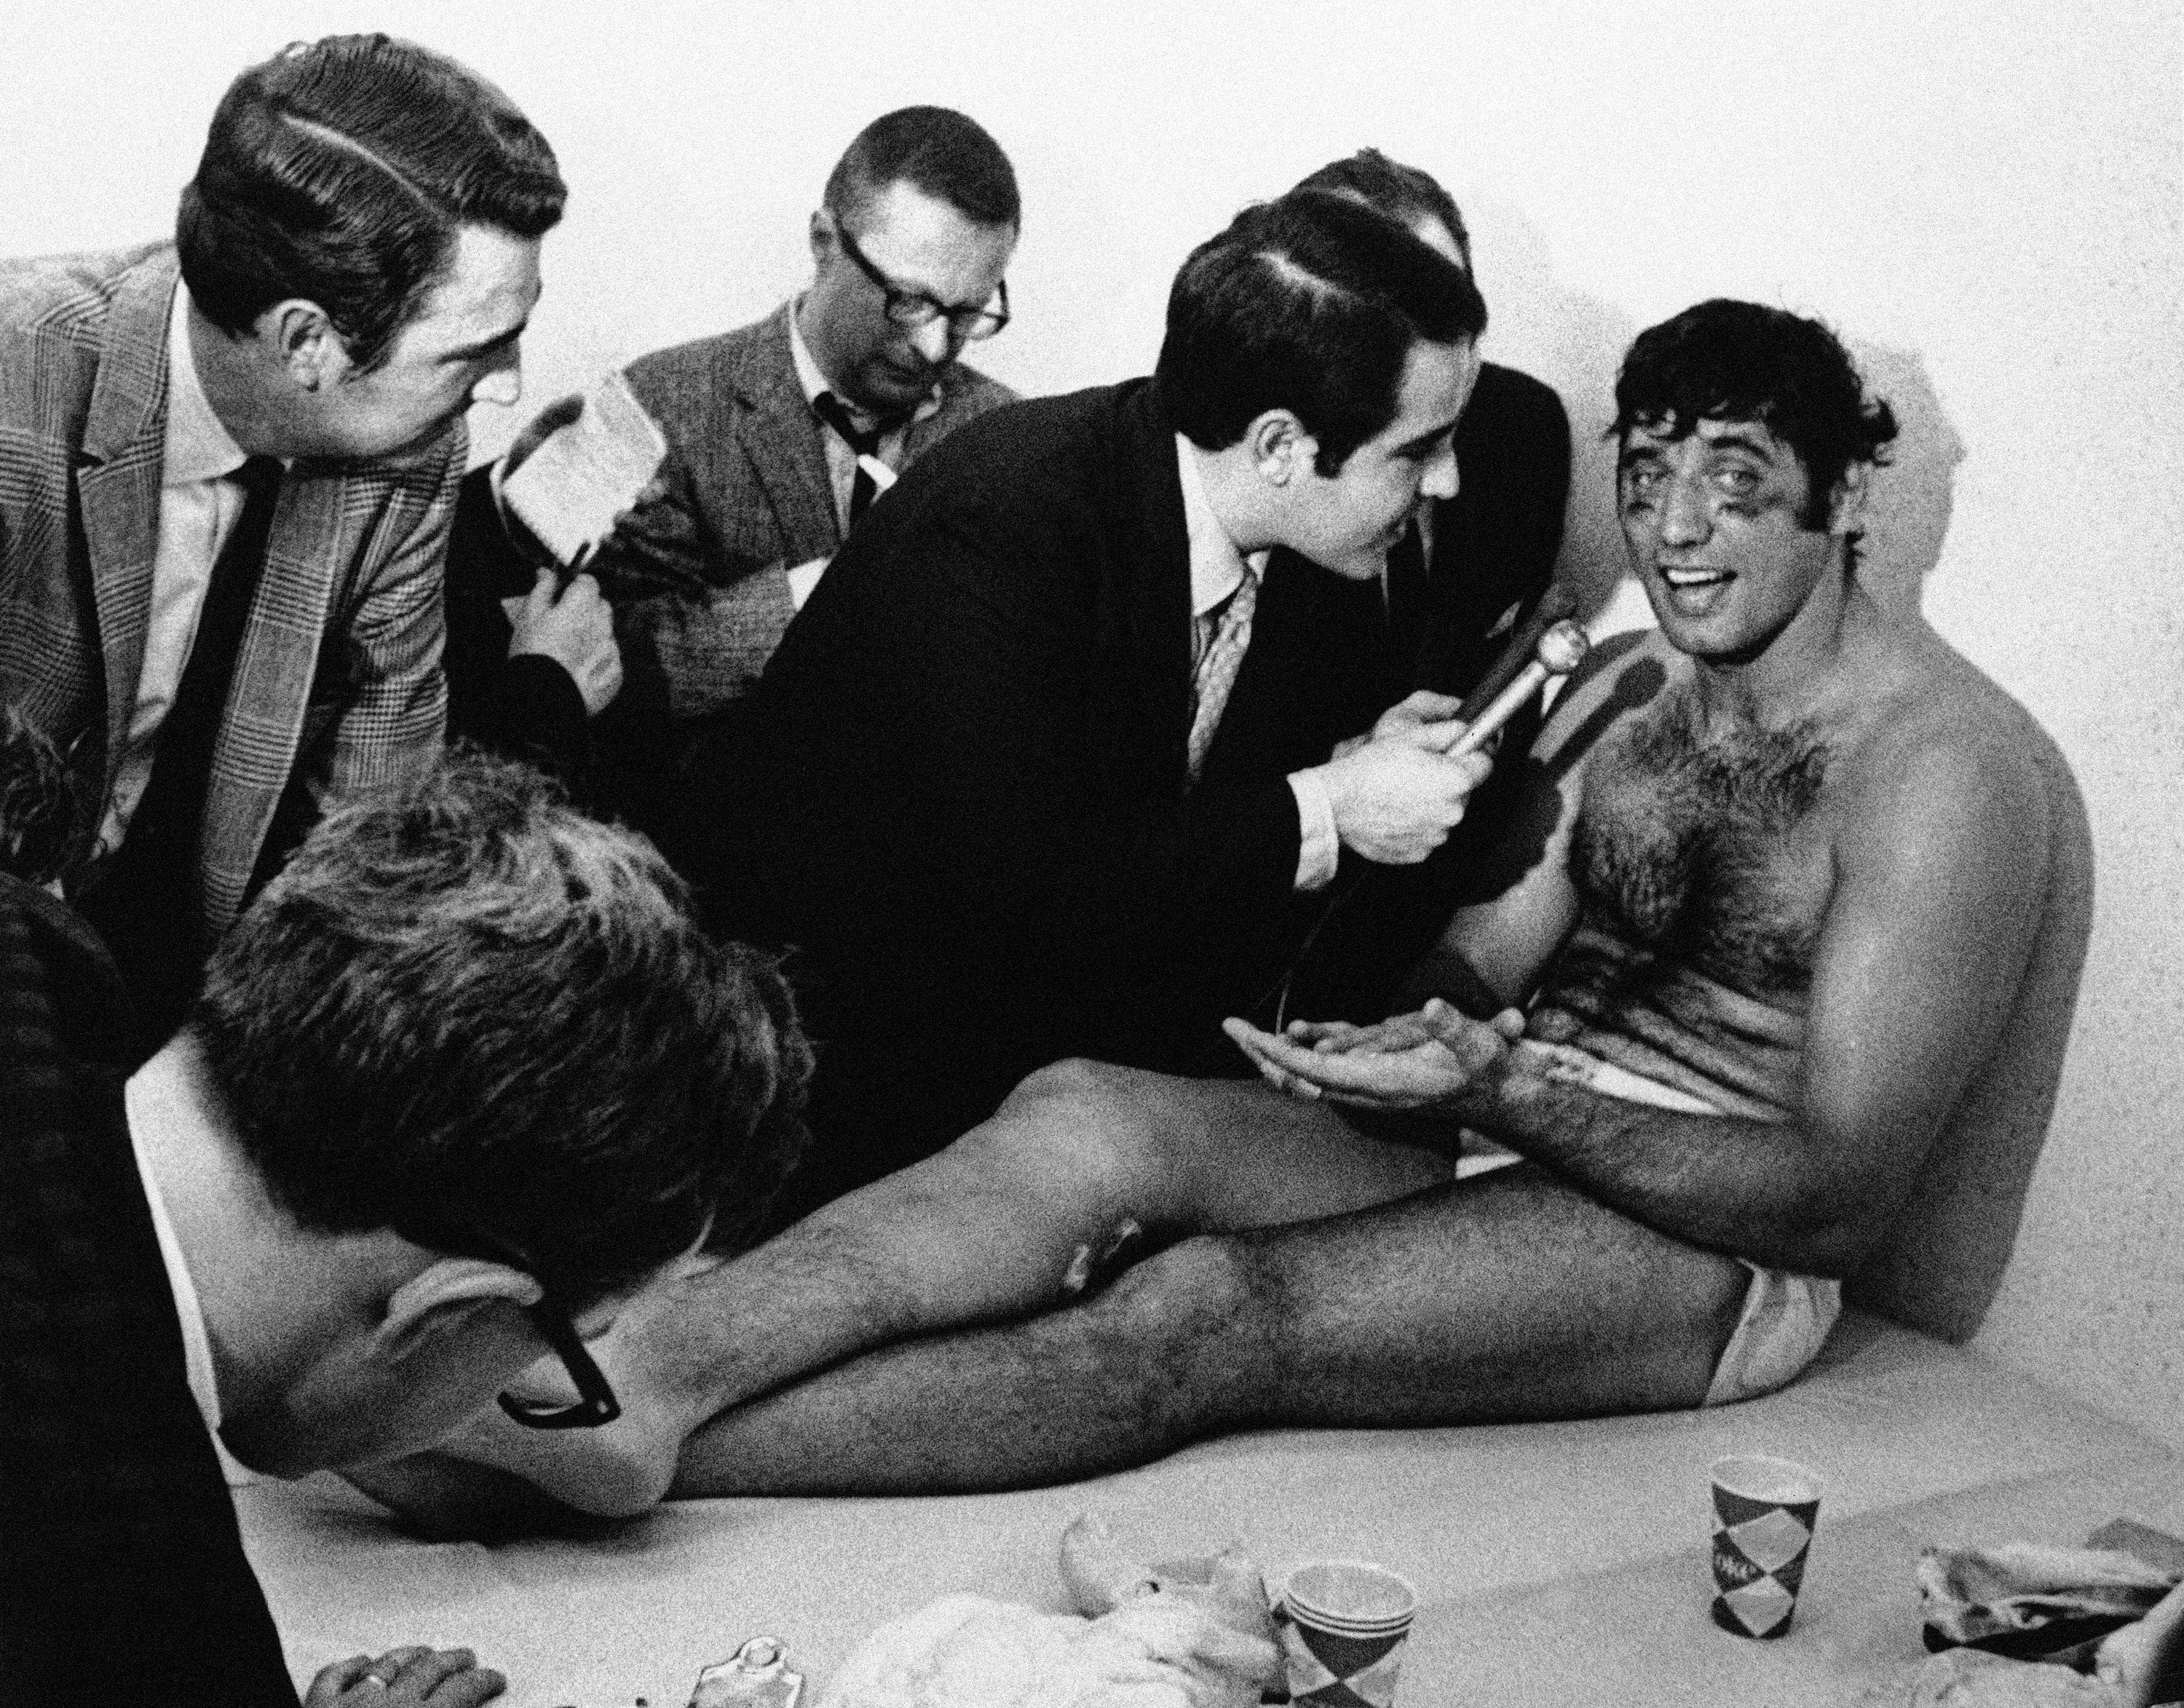 New York Jets quarterback Joe Namath talks with reporters after the Jets defeated the Baltimore Colts 16-7 in Super Bowl III.